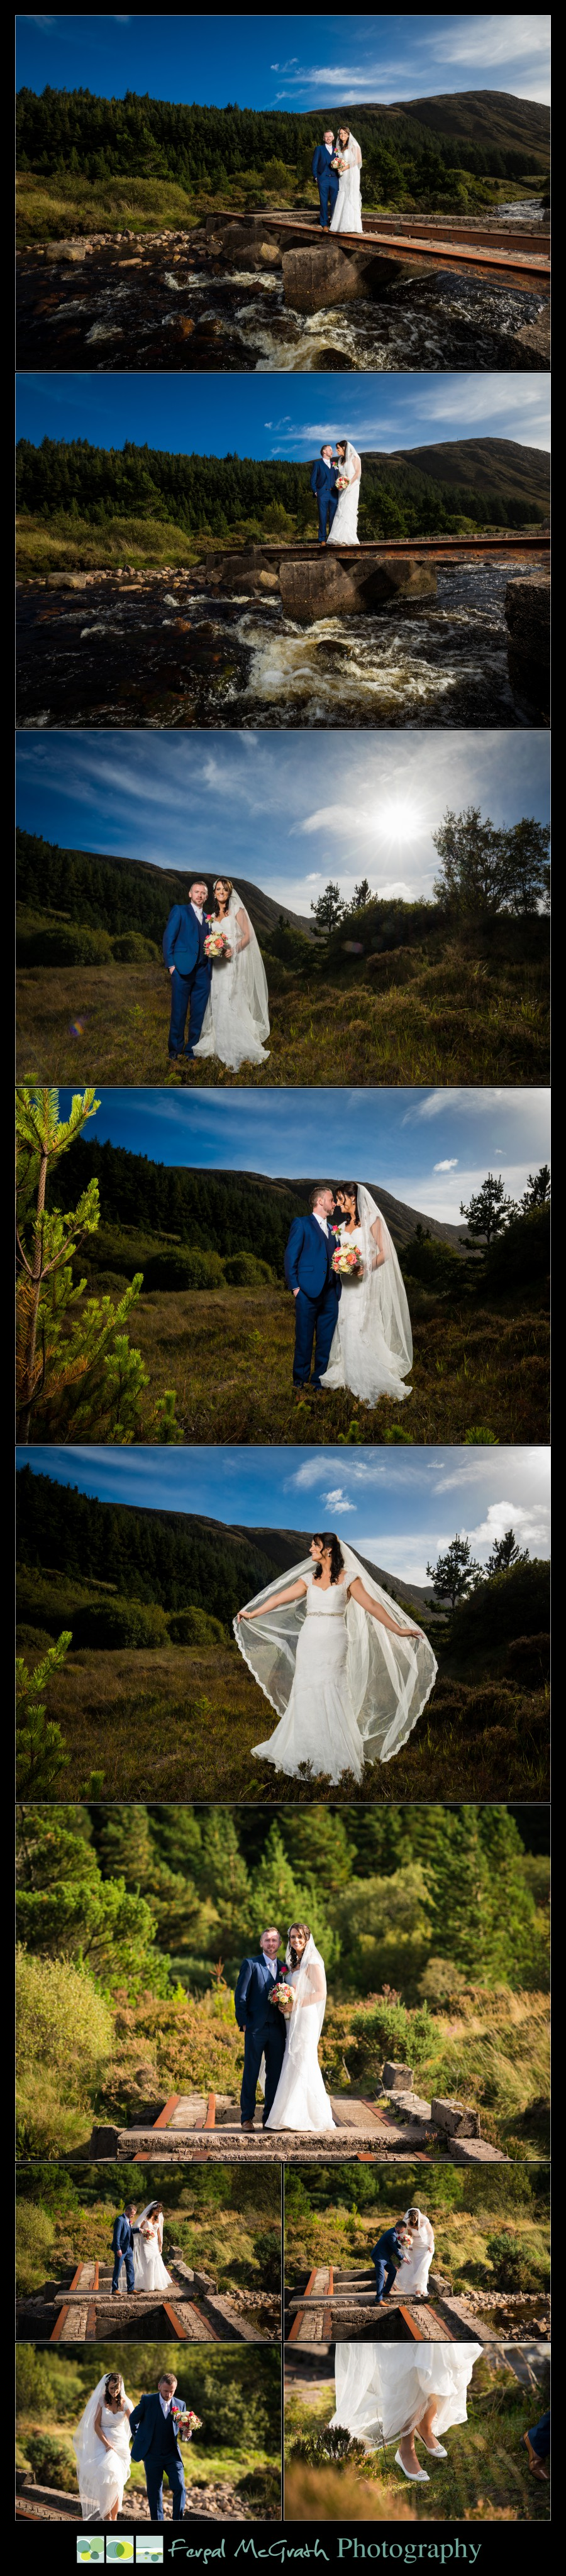 Mill Park Hotel Wedding Laura + John wedding photos on the old railway tracks in barnesmore gap donegal